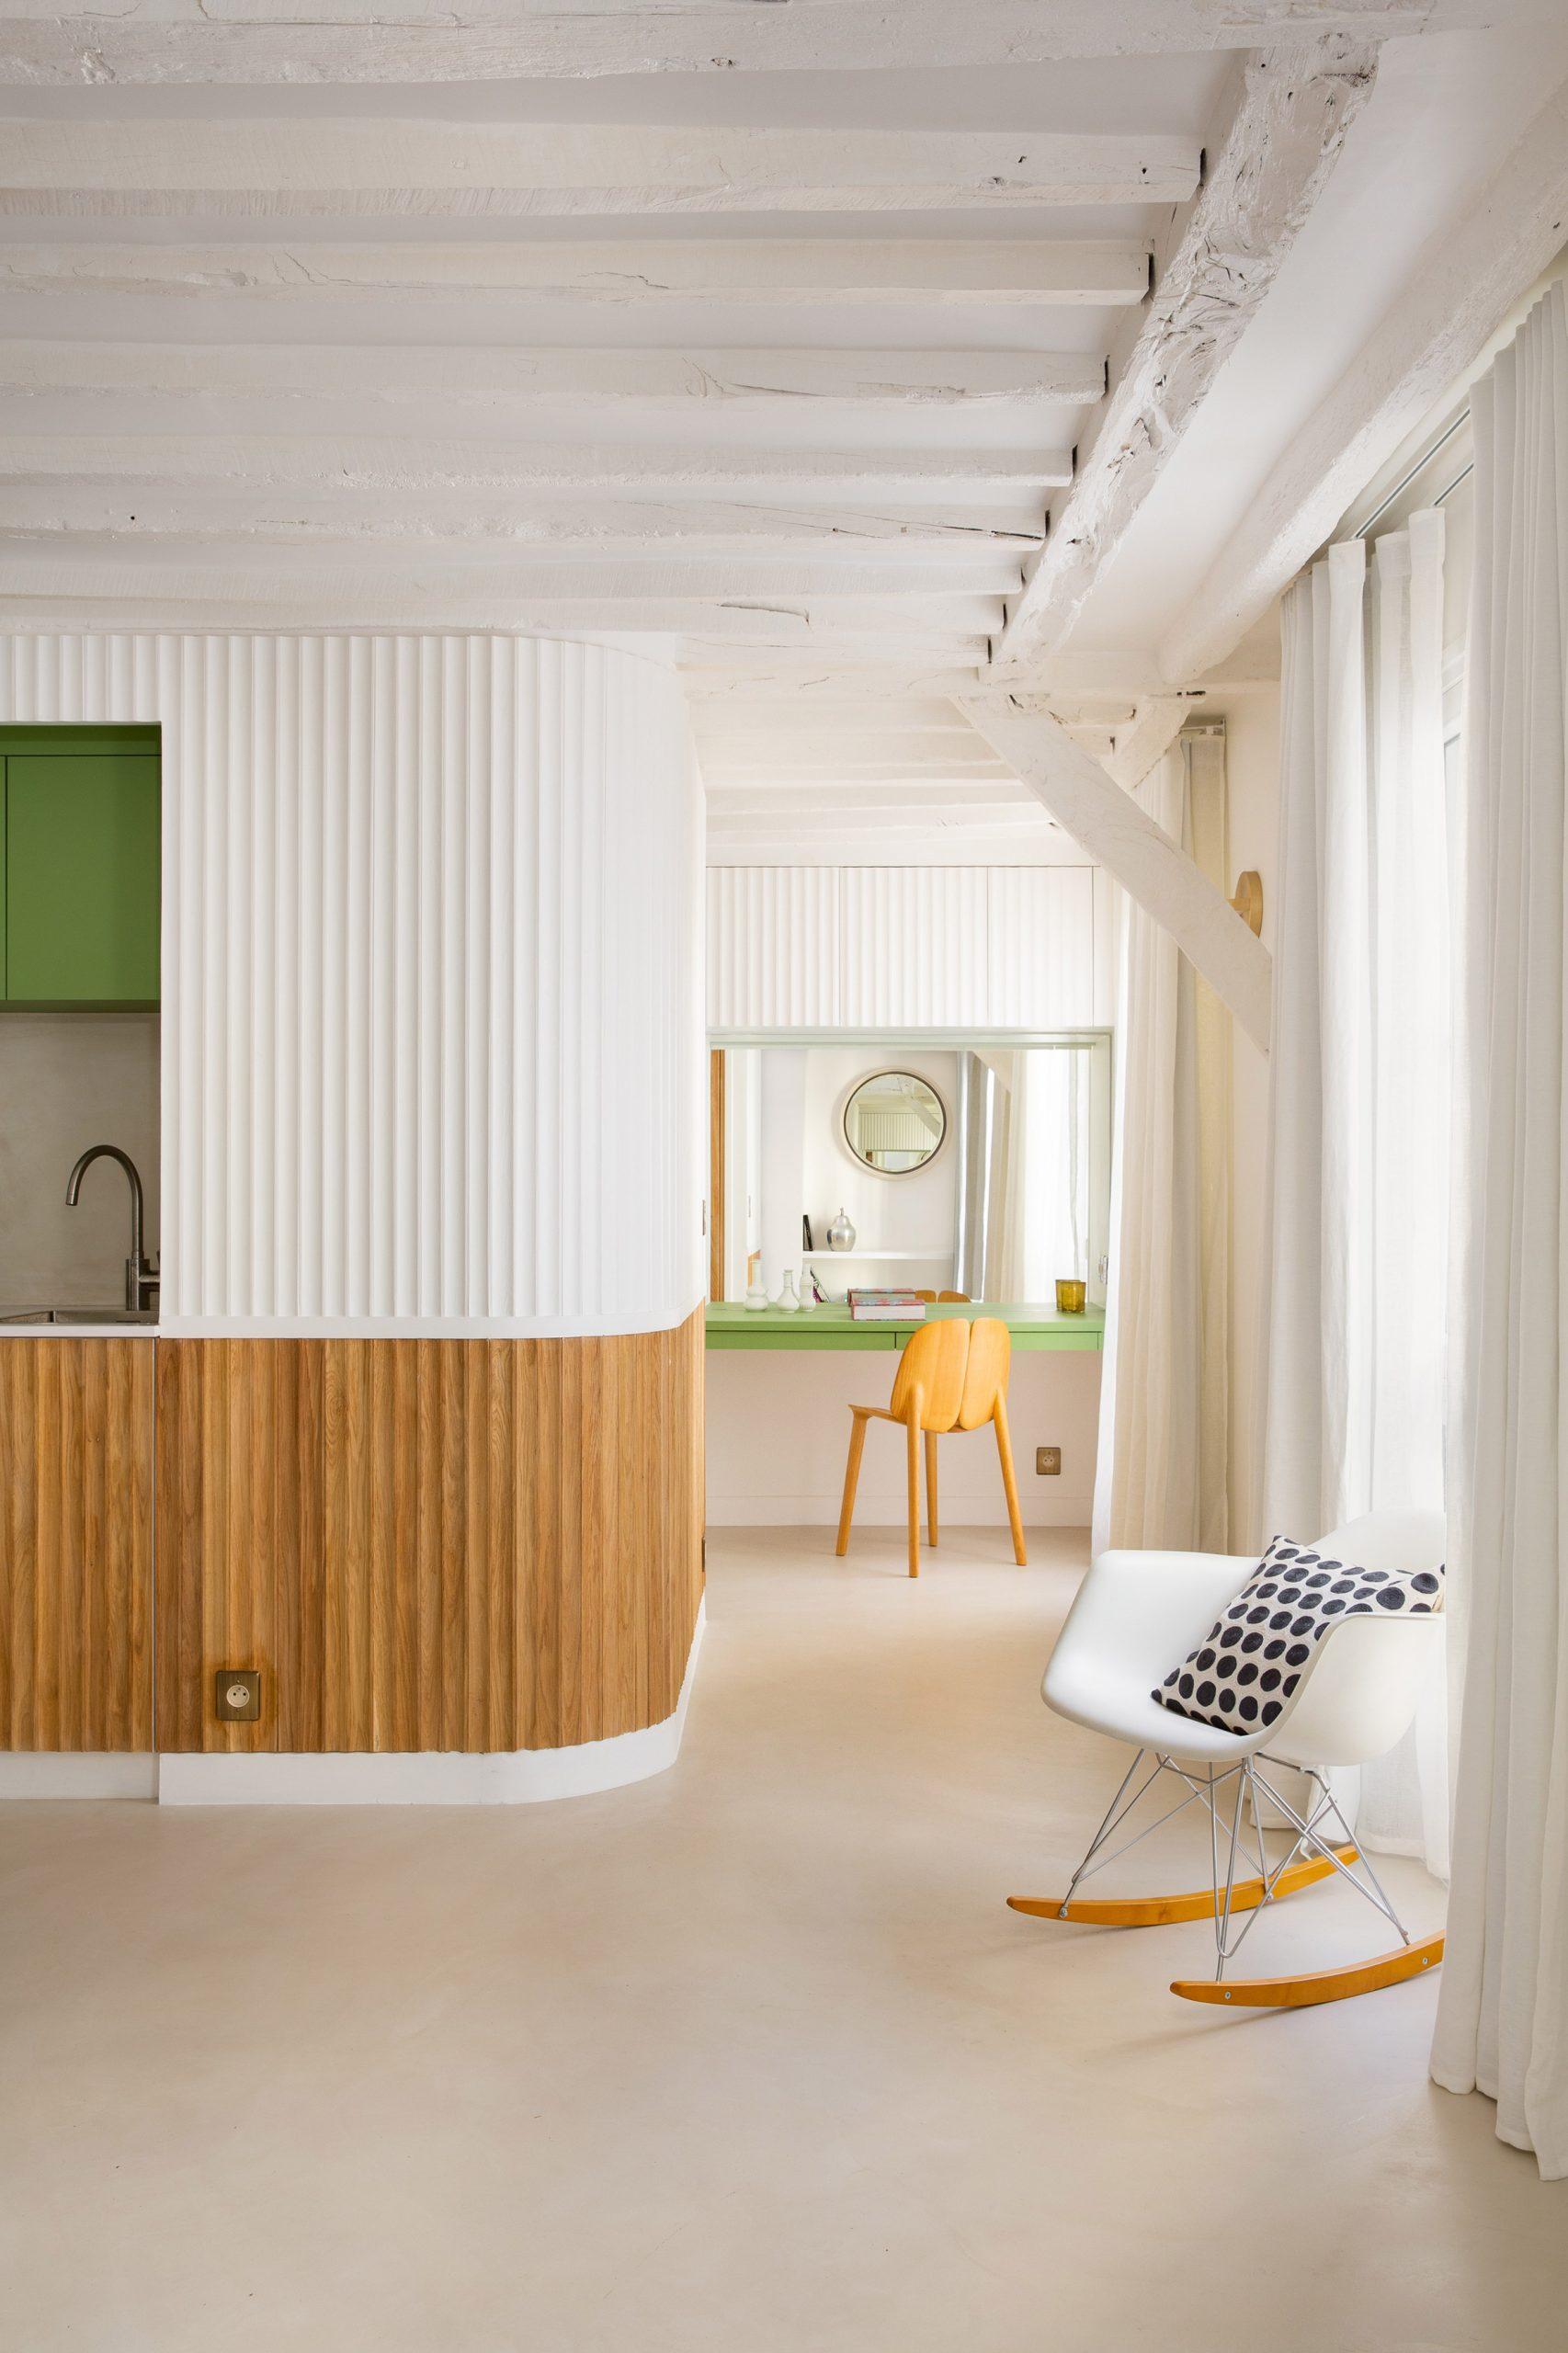 White walls run throughout the space by Pierre-Louis Gerlier Architecte